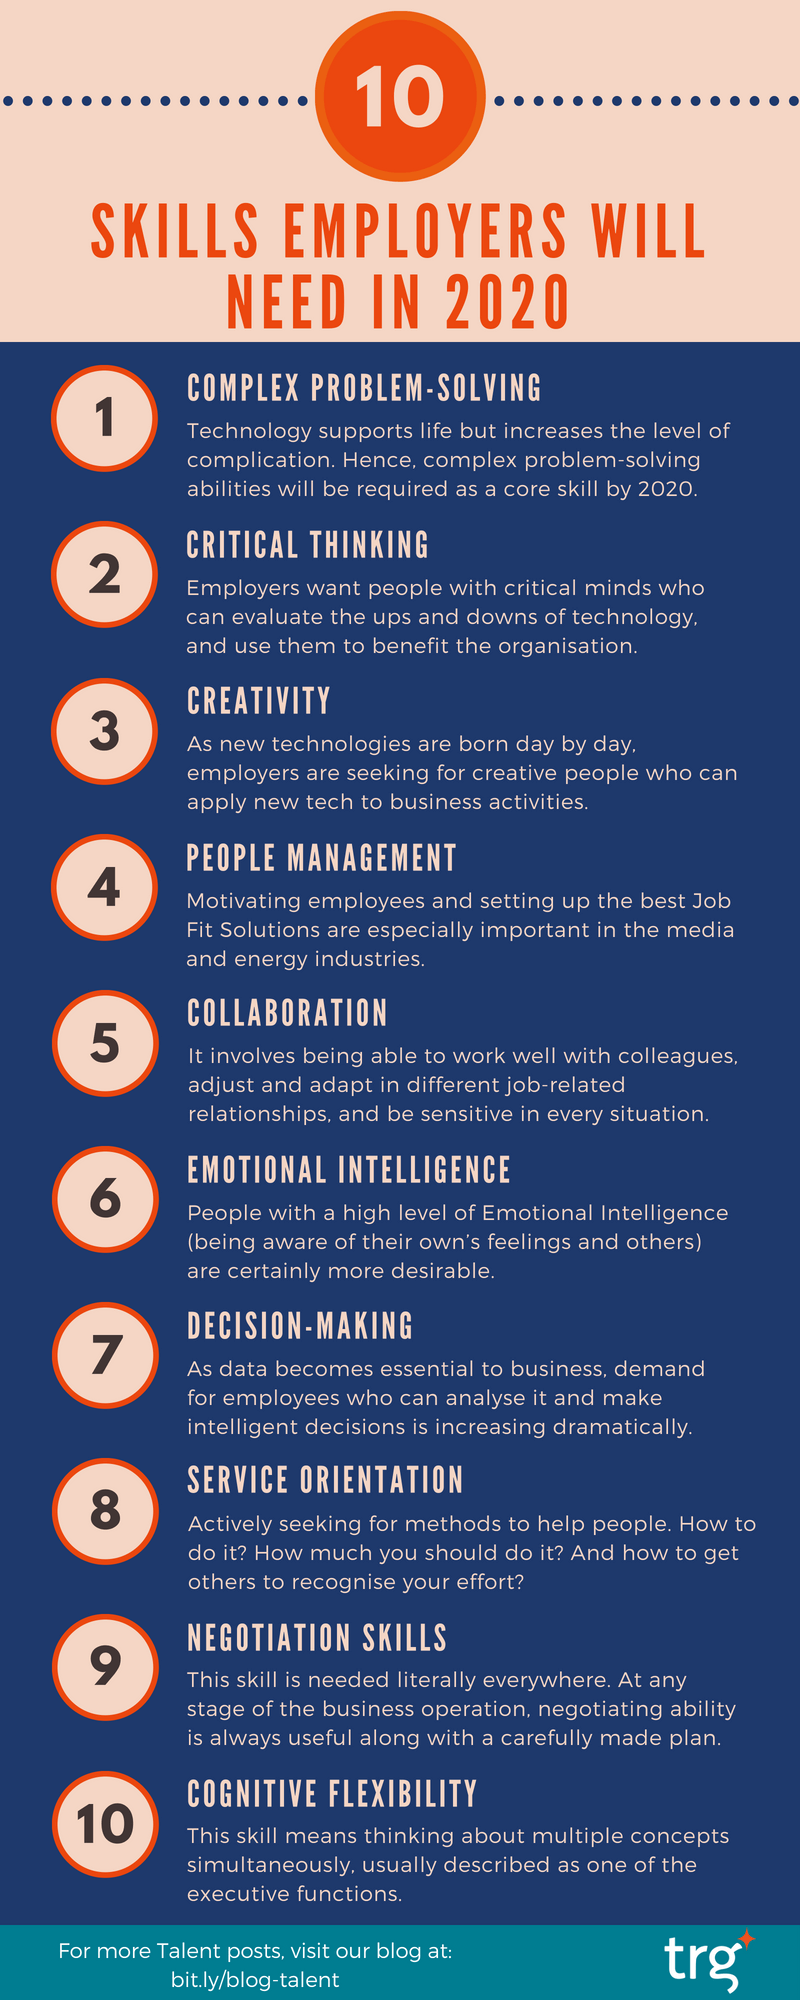 10 skills employers will need in 2020